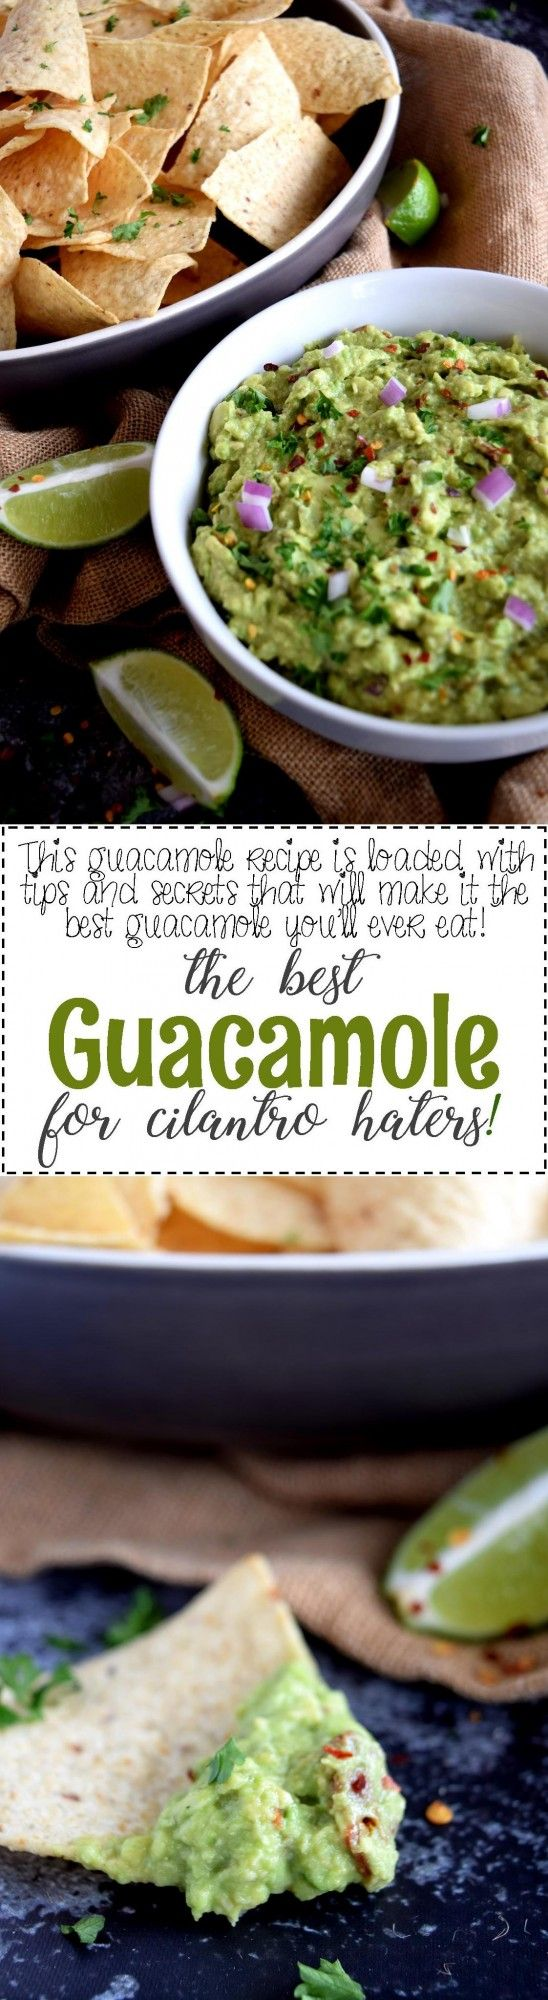 Guacamole for Cilantro Haters - This guacamole recipe is for the picky eater; we all have at least one in our lives!  Guacamole for Cilantro Haters has three things that make it different than any other guacamole recipe.  Cilantro haters, this one is for you!